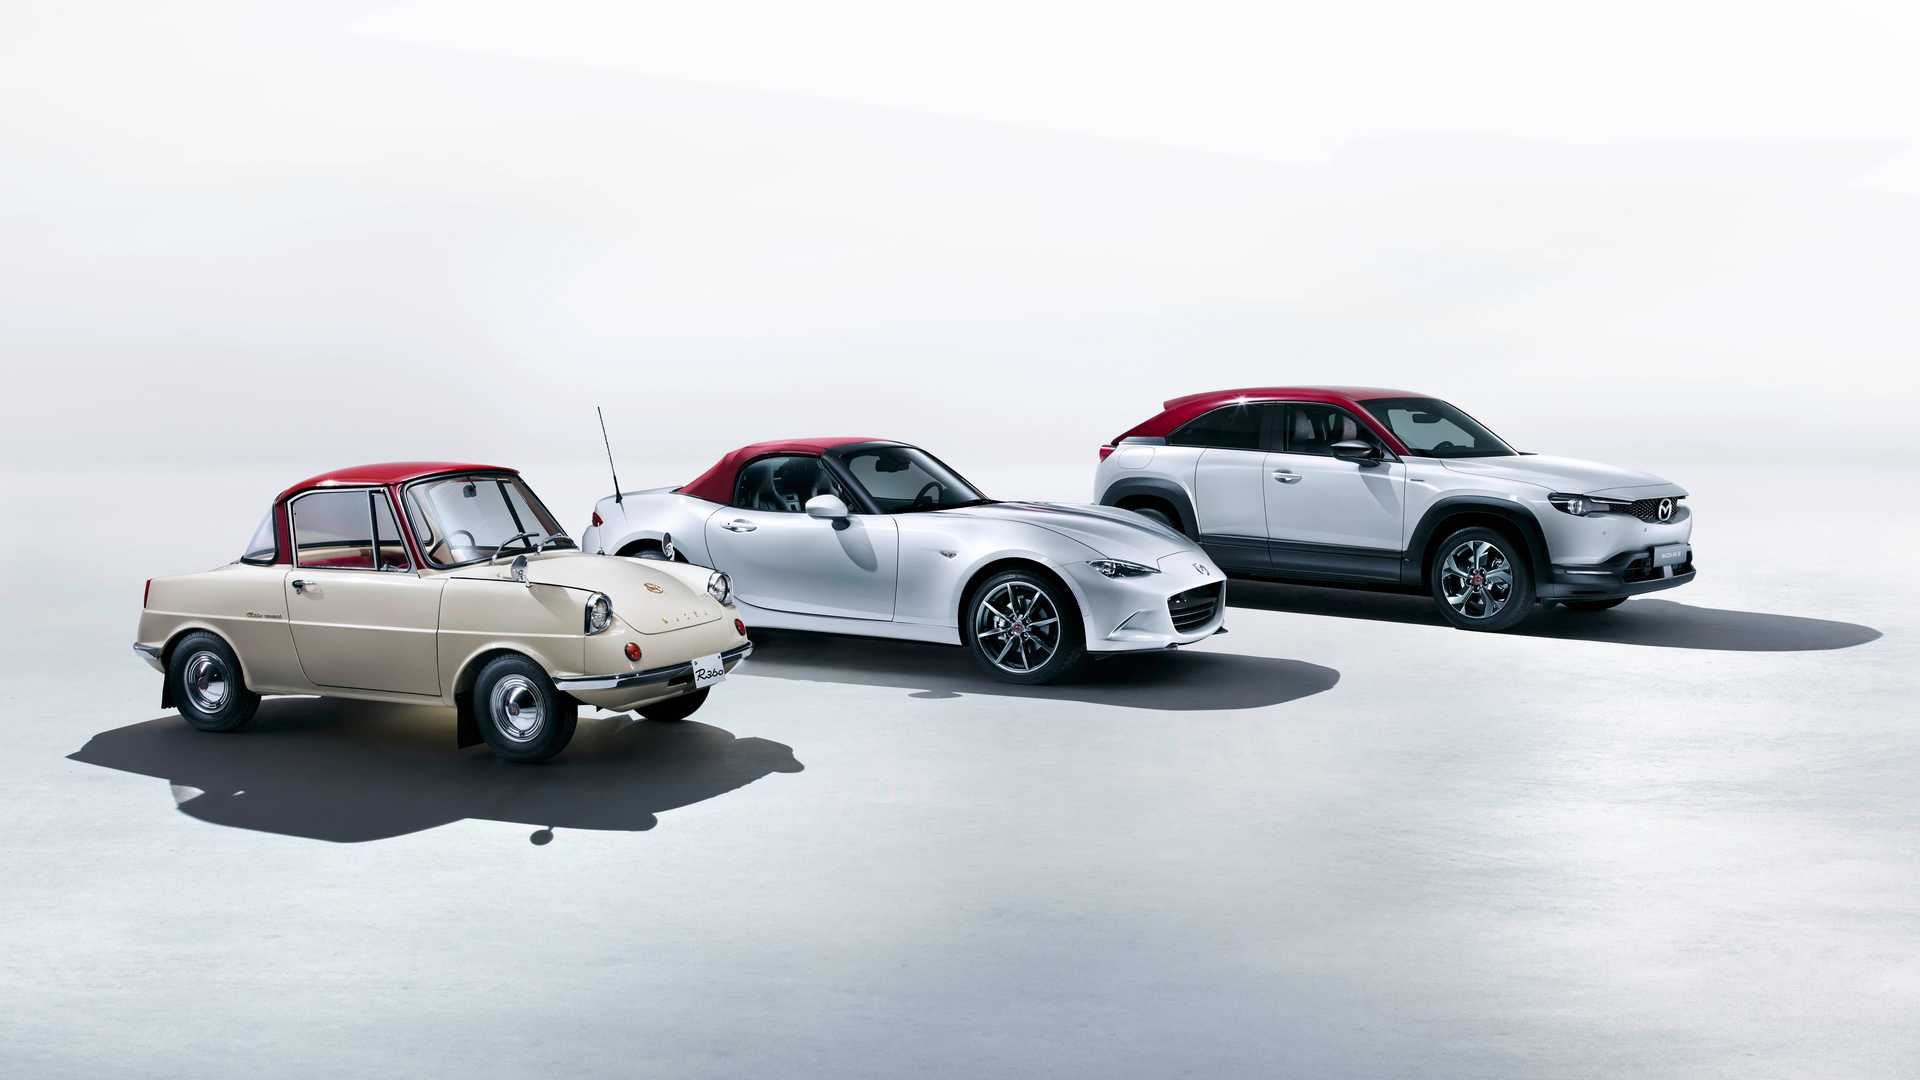 Mazda Celebrates Centenary with Eight Limited-edition Models